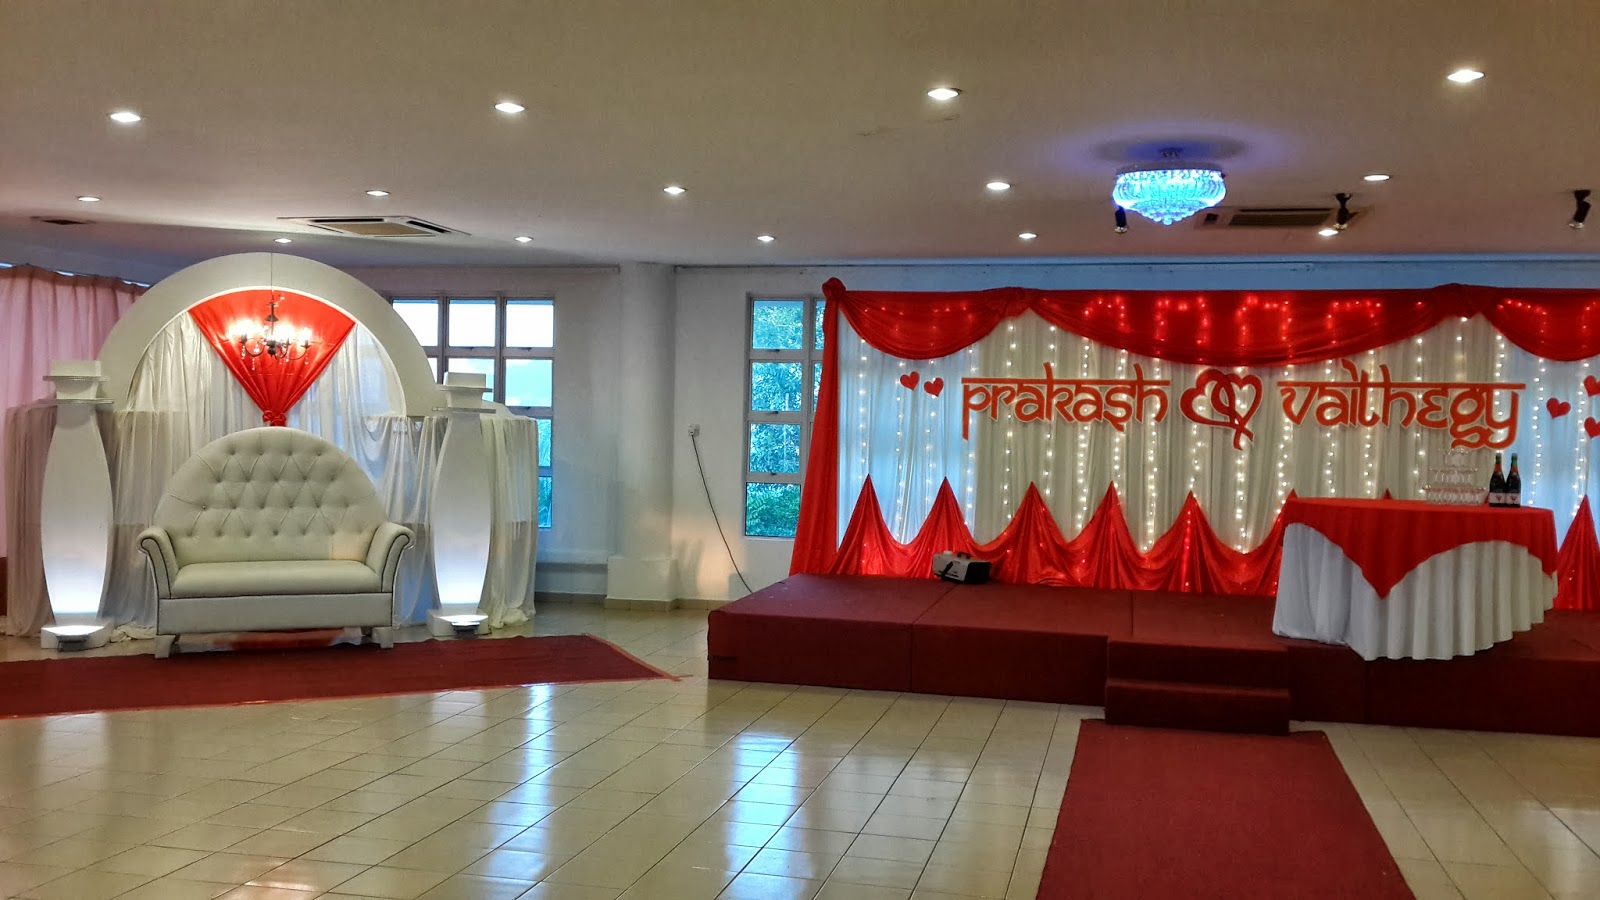 Raags management services wedding dinner rawang east emreld wedding dinner rawang east emreld club mewah kajang junglespirit Image collections